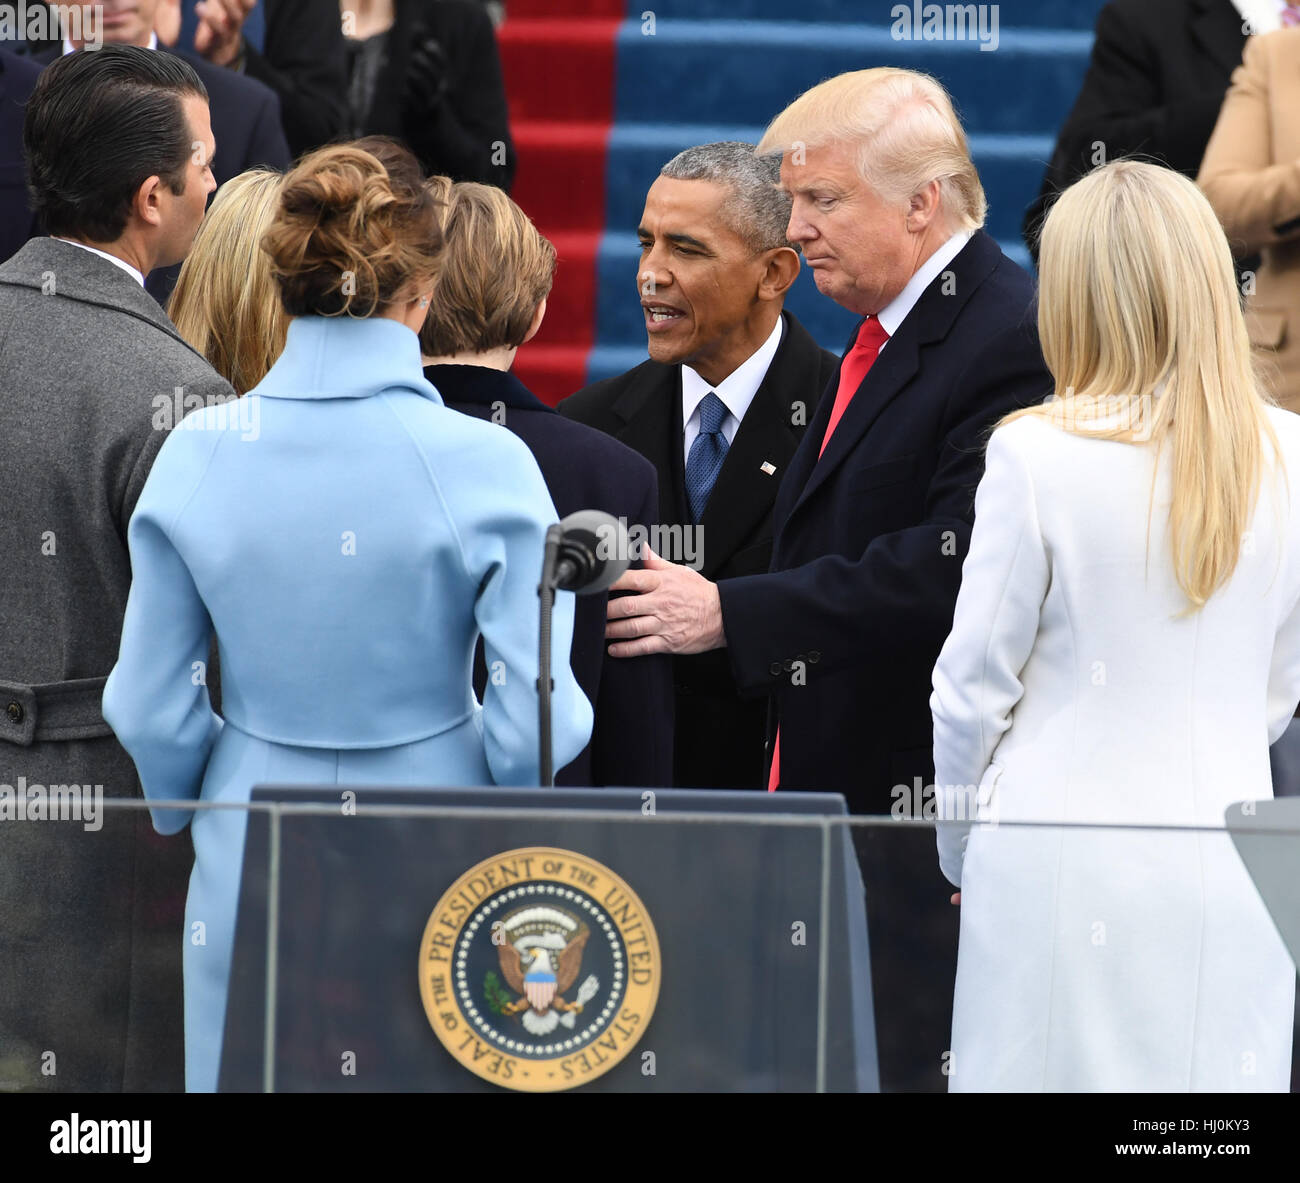 Former president barack obama greets president donald j trump and former president barack obama greets president donald j trump and family after the oath of office at trumps inauguration on january 20 2017 in washington m4hsunfo